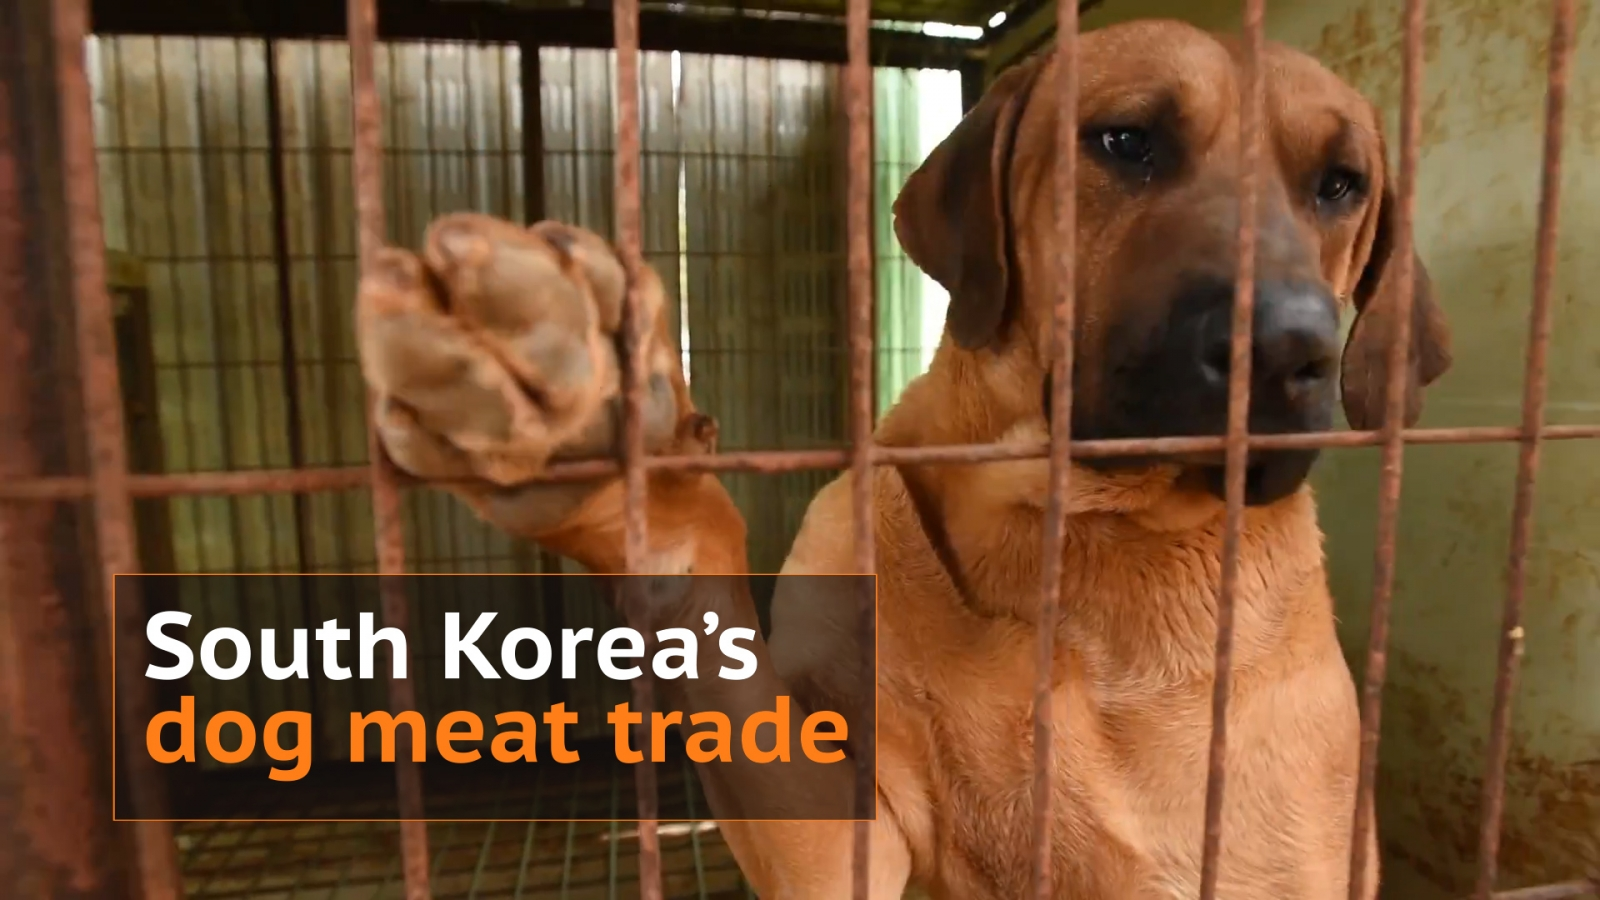 dog meat trade Last chance for animals (lca) has formed a sister organization in s korea, animal liberation wave (alw) with one mission in mind – to end the dog meat trade this change must come from koreans to demand change at the government level rescuing dogs, one-at-a-time is not the answer and will not put an end this.